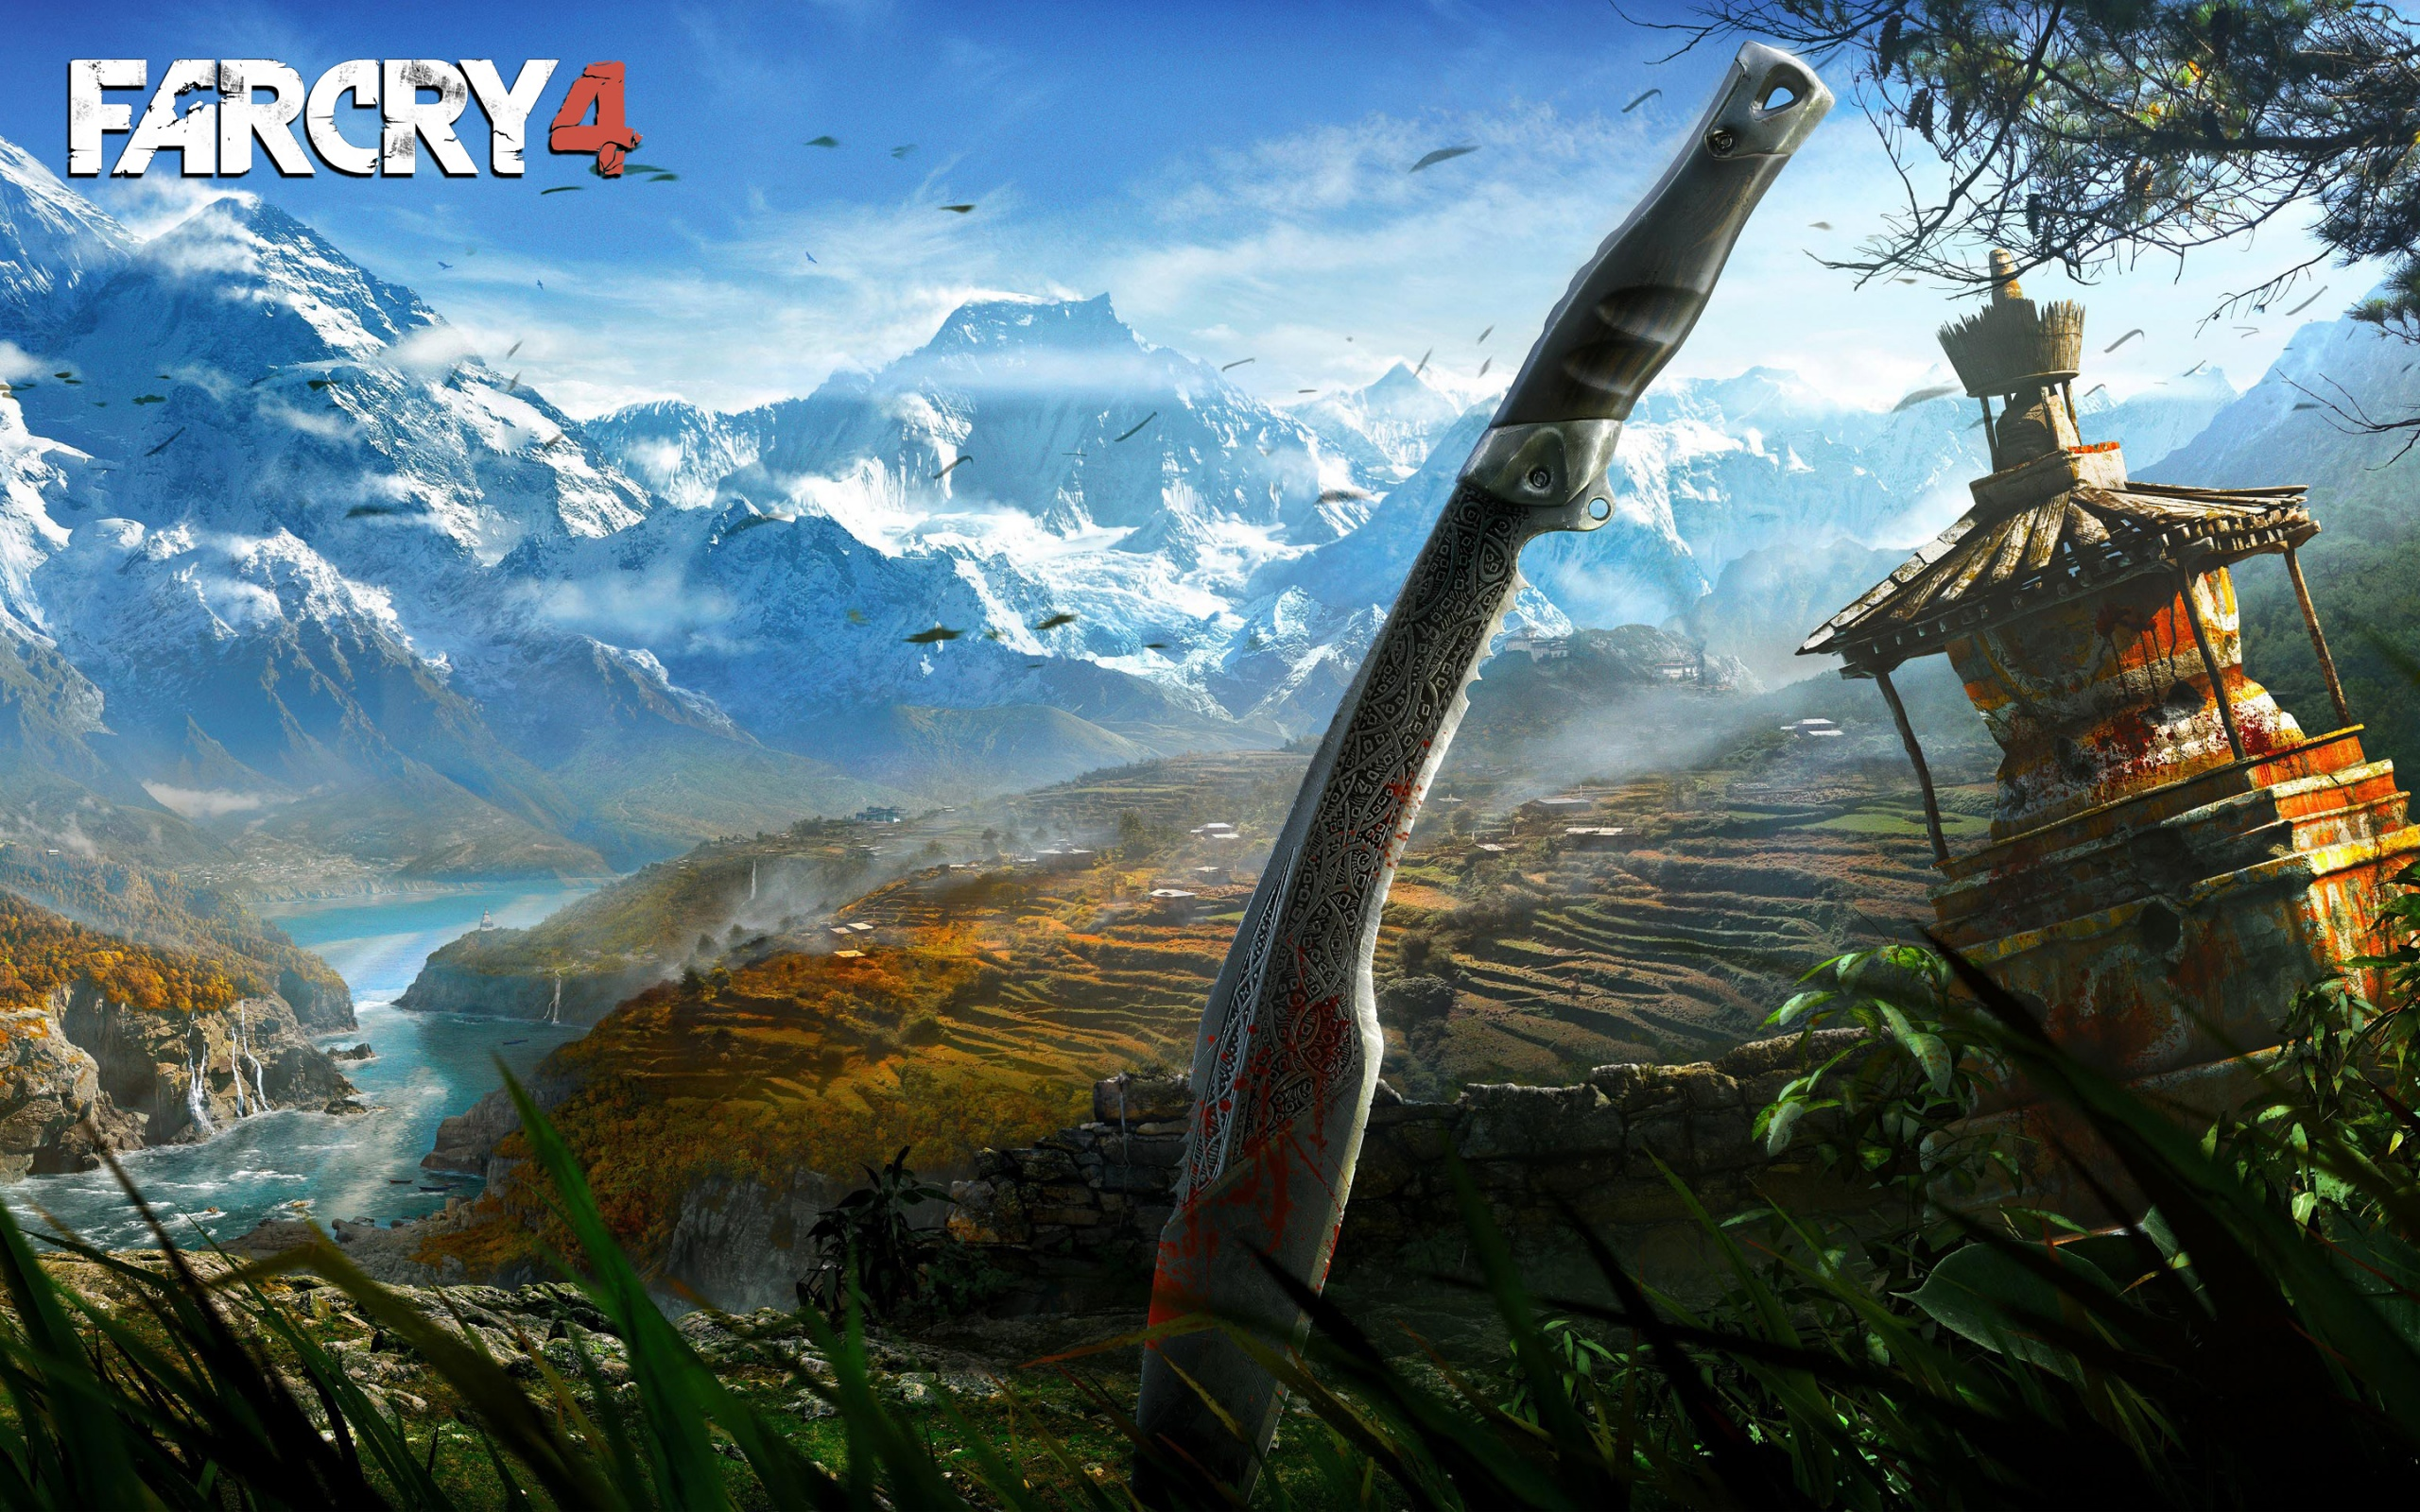 Far Cry 4 Himalayas Wallpapers In Jpg Format For Free Download